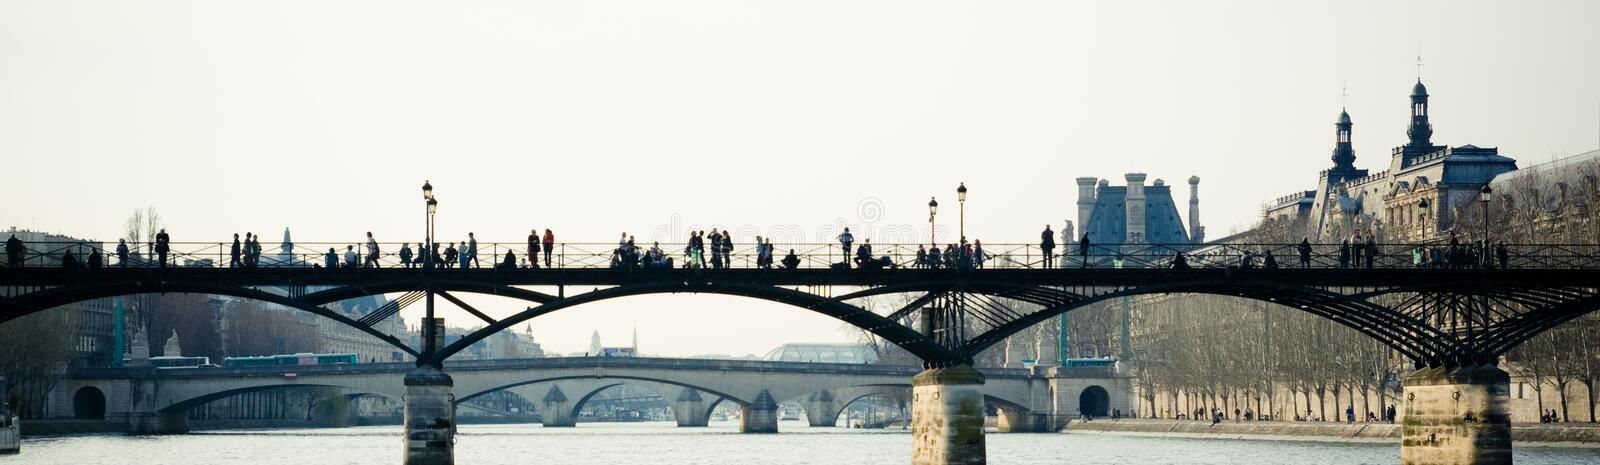 Passerelle de Paris photographie stock libre de droits